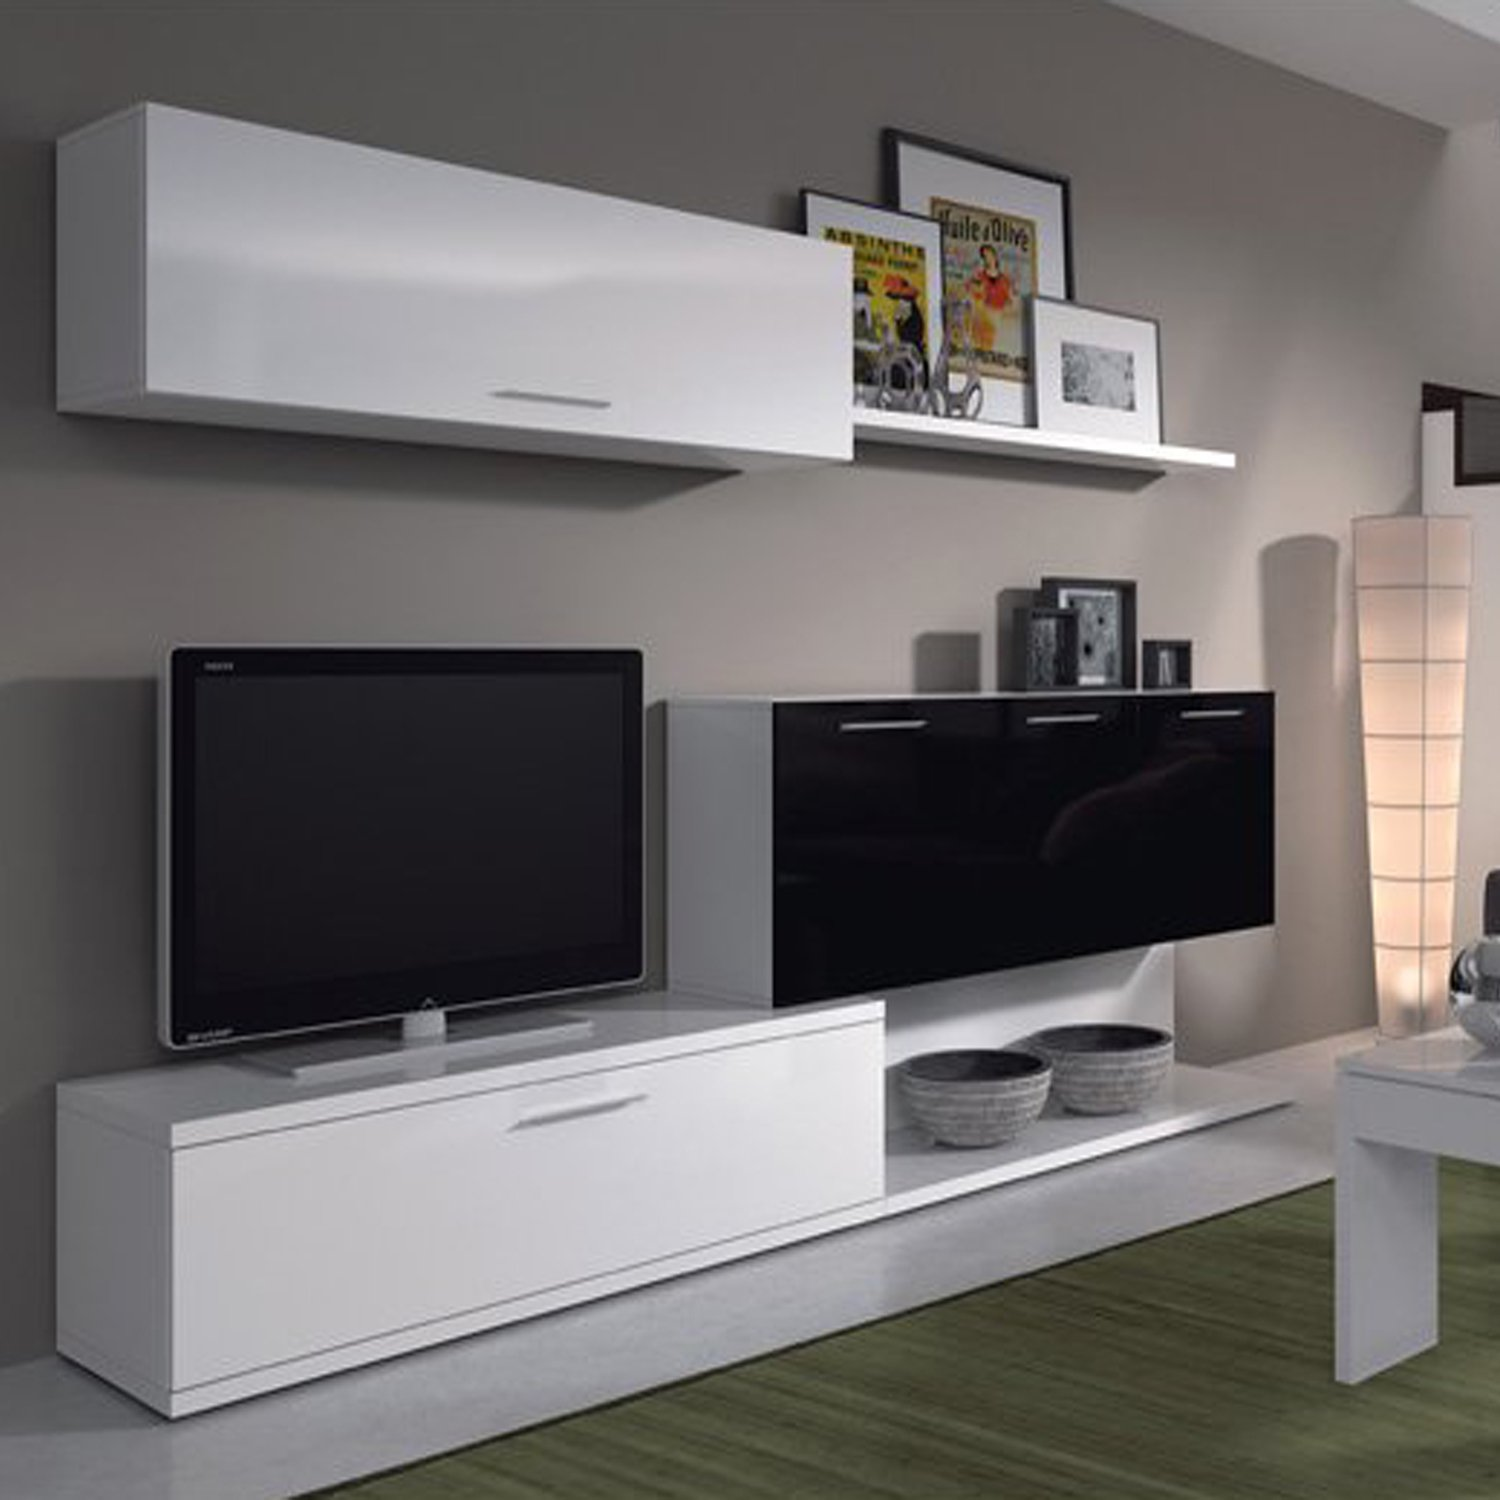 mueble de salon moderno color blanco y negro brillo due home amazones hogar - Muebles De Salon Blanco